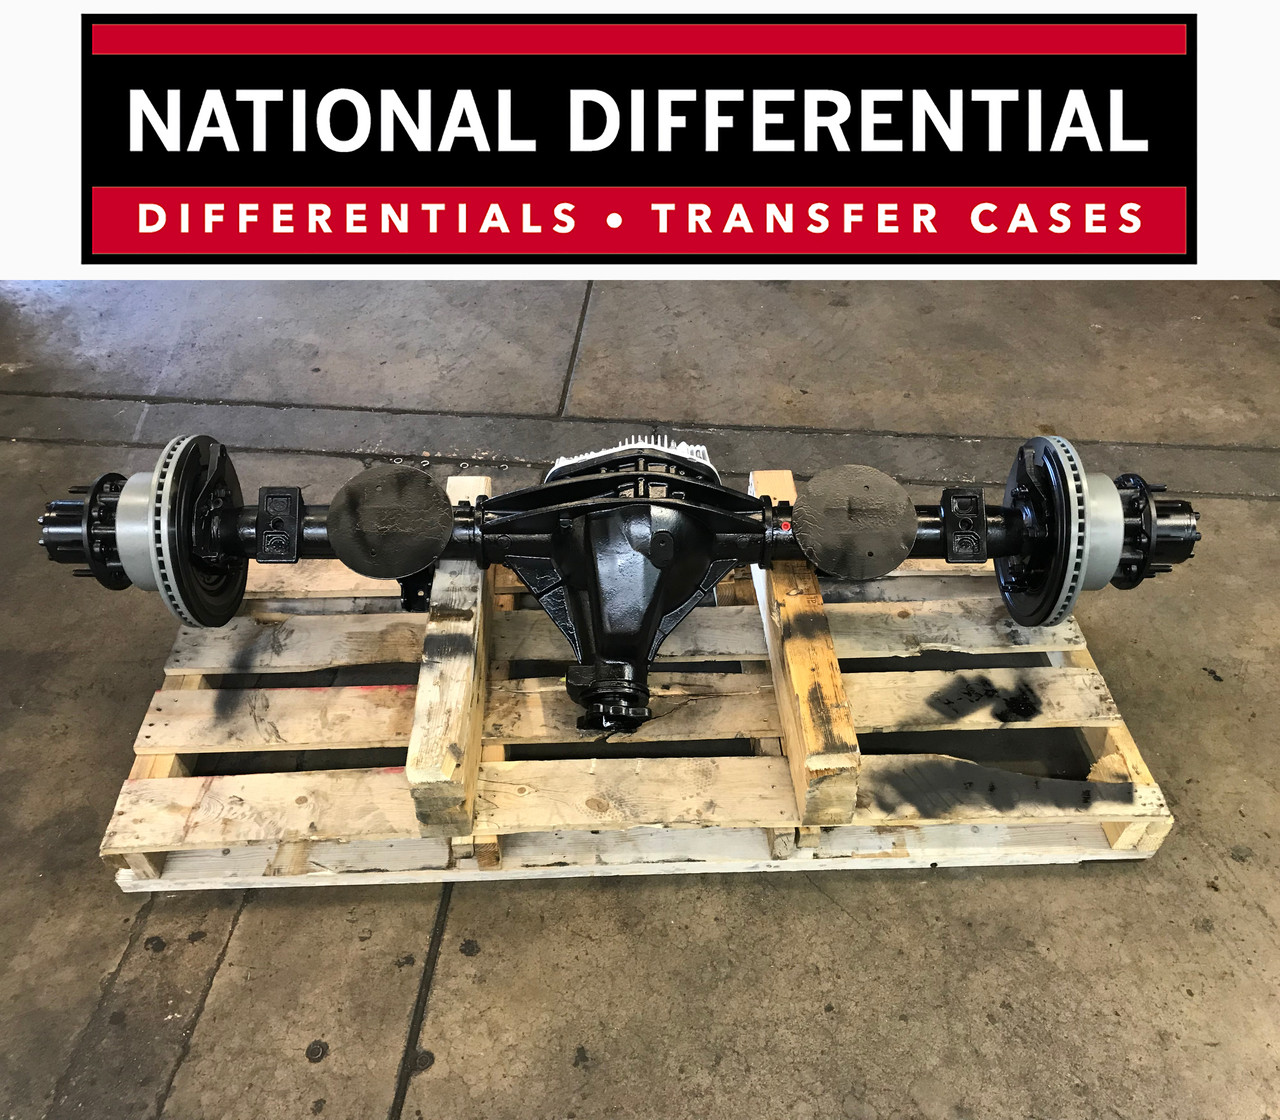 11.8 inch Rear Differential for 2014-2018 Dodge Ram 3500 Dually Pickup Trucks .  Available with 3.73, 4.10 or a custom gear ratio.